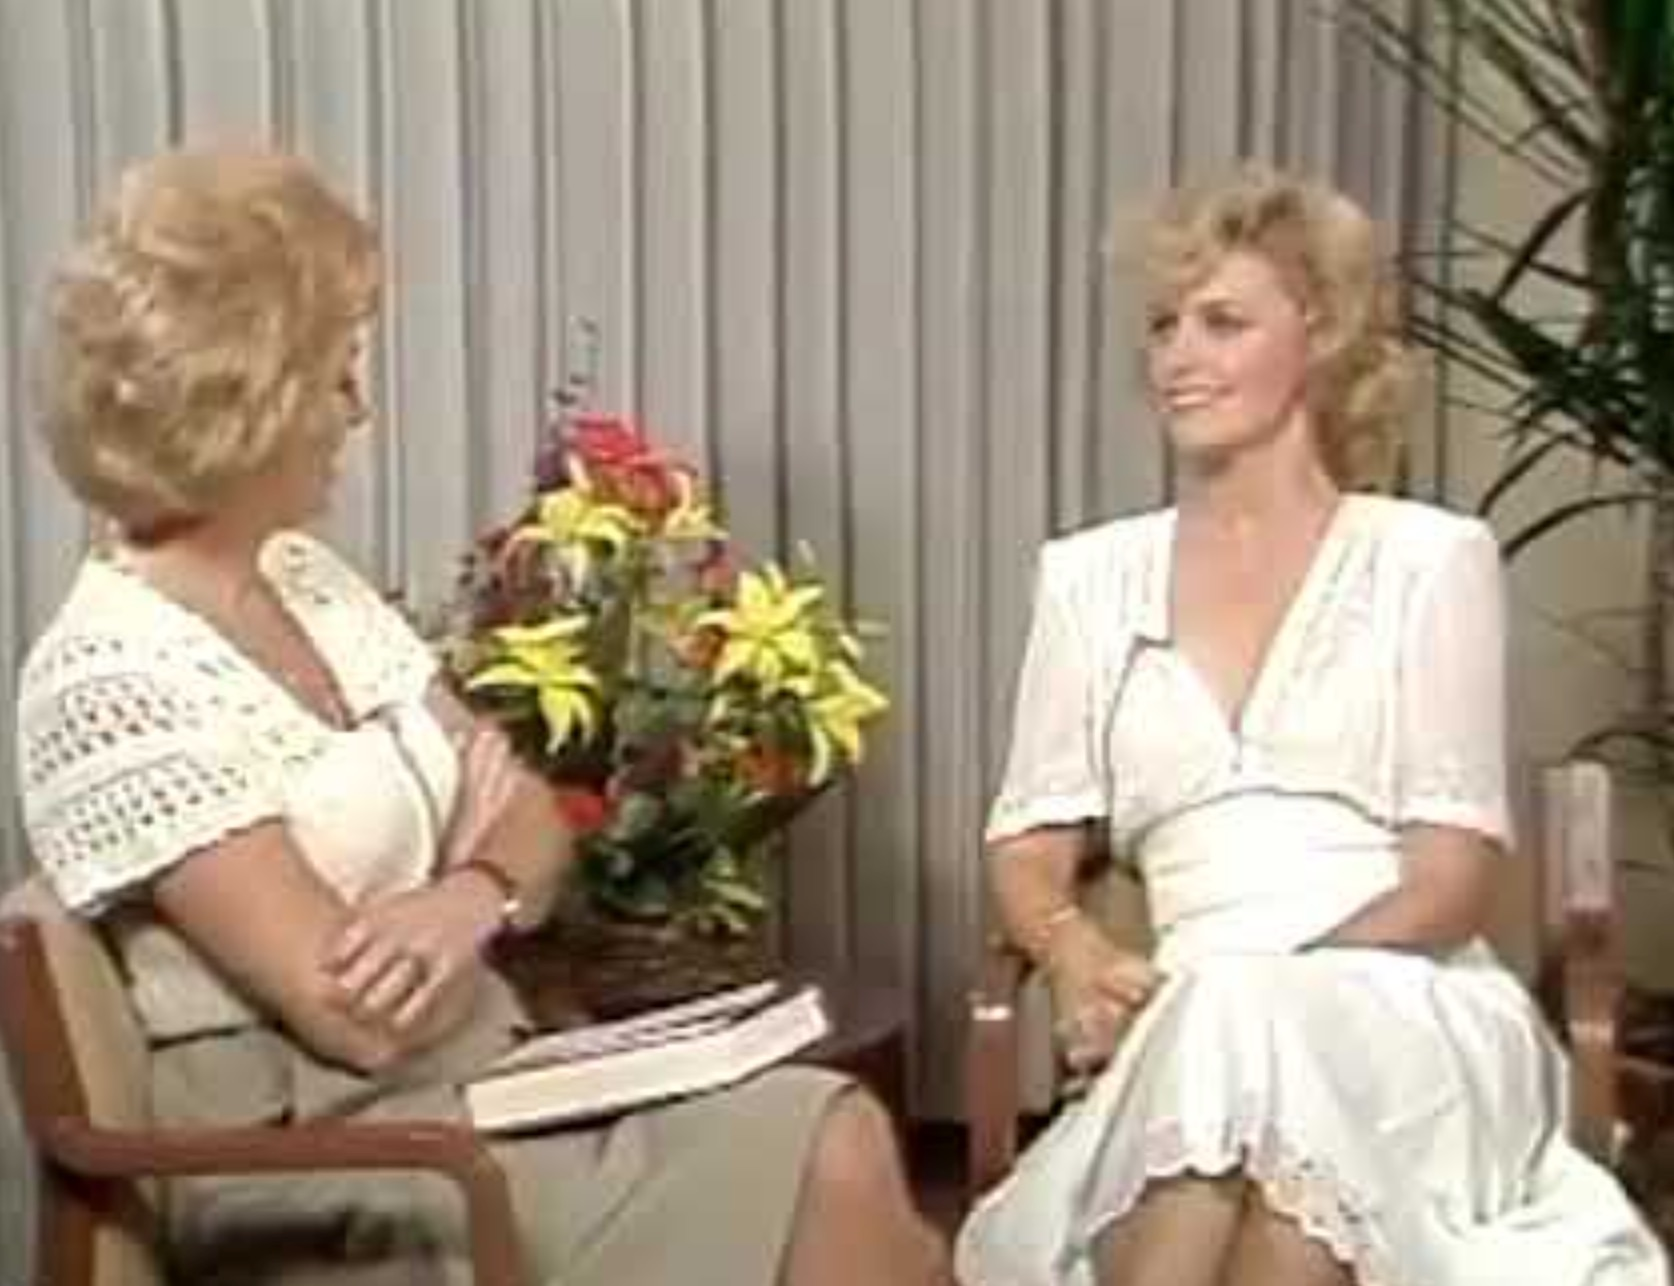 Watch this Nebraska broadcaster's hilariously awkward and direct 1980s celebrity interviews